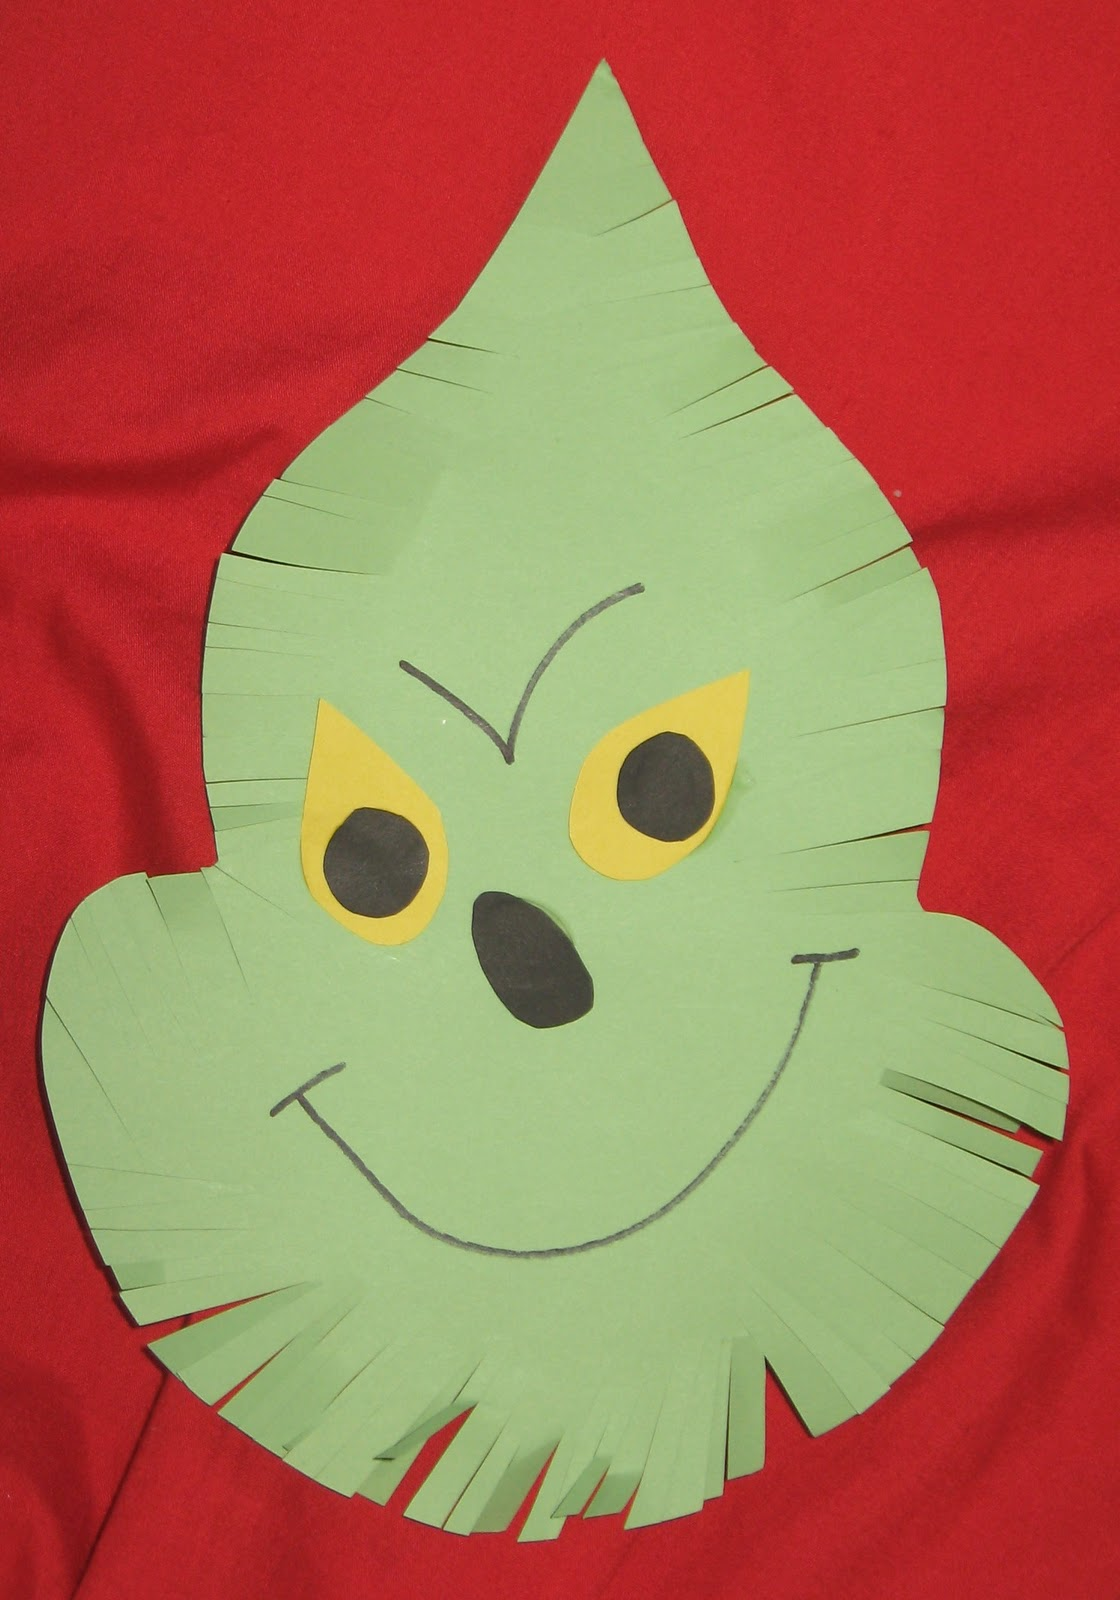 Grinch face how the grinch stole christmas grinch smile animated